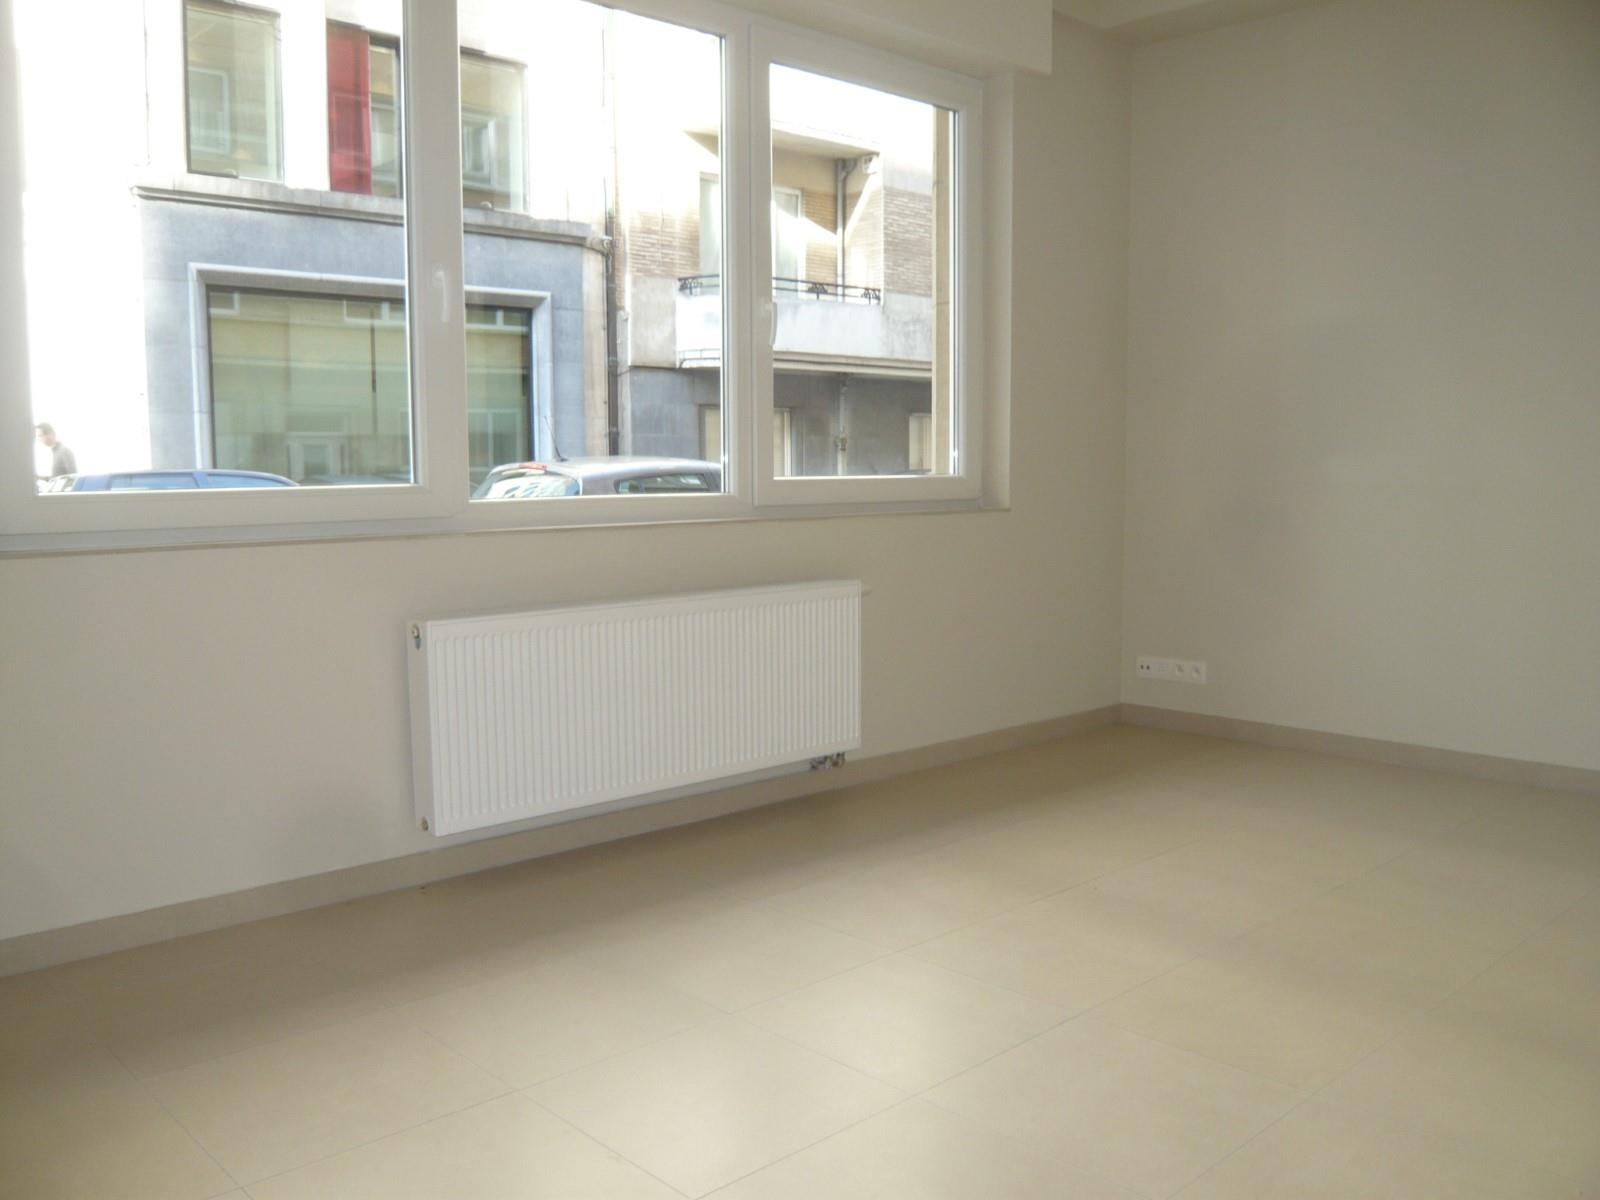 Ground floor - Bruxelles - #3616667-1